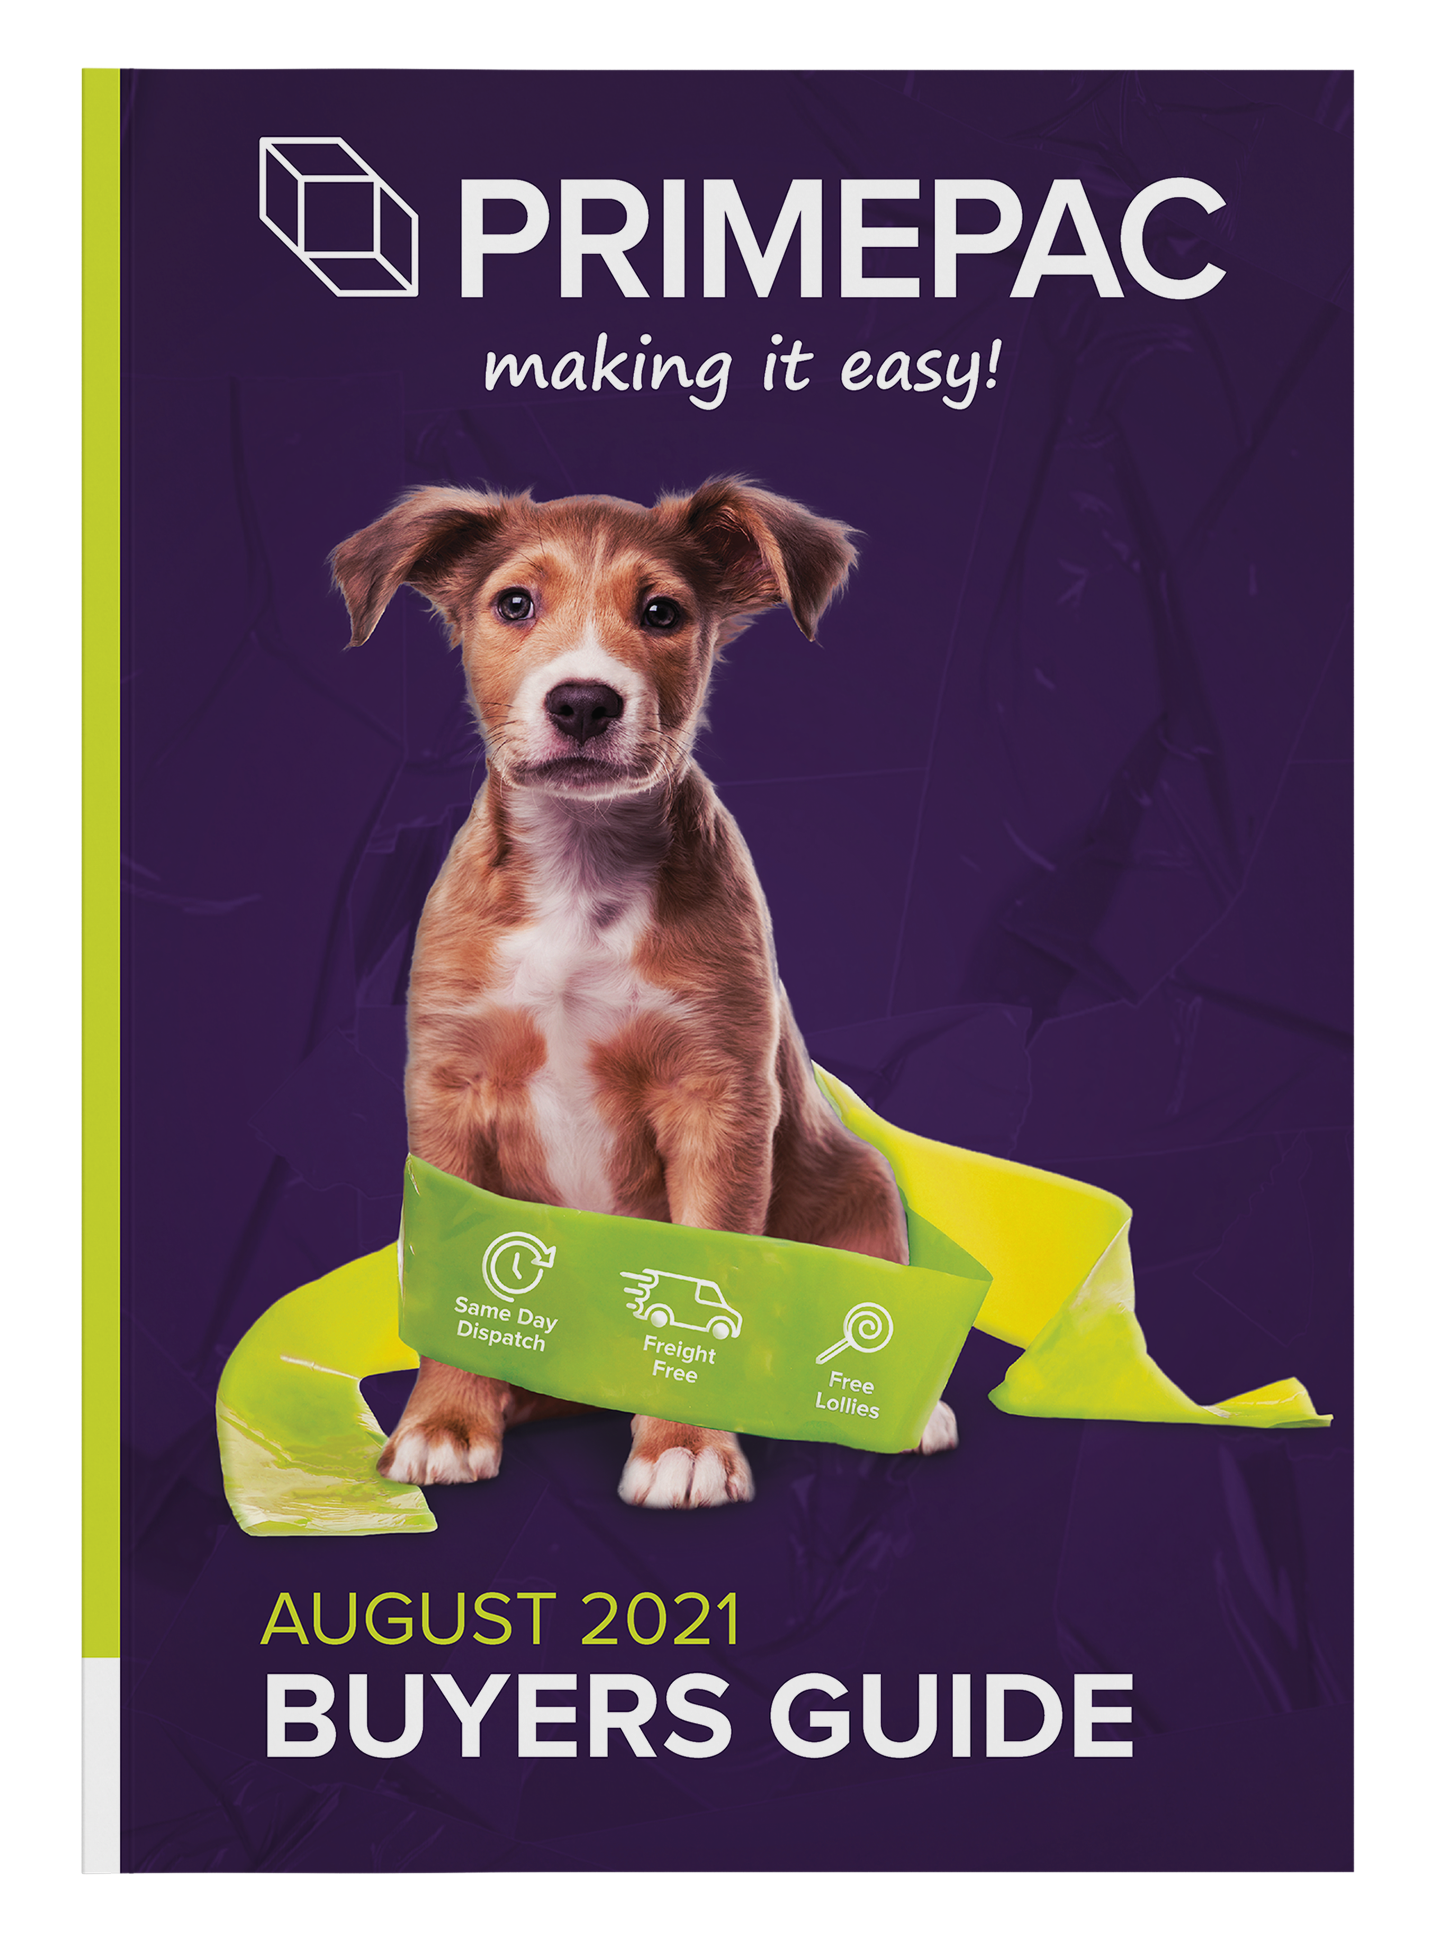 August 2021 buyers guide cover